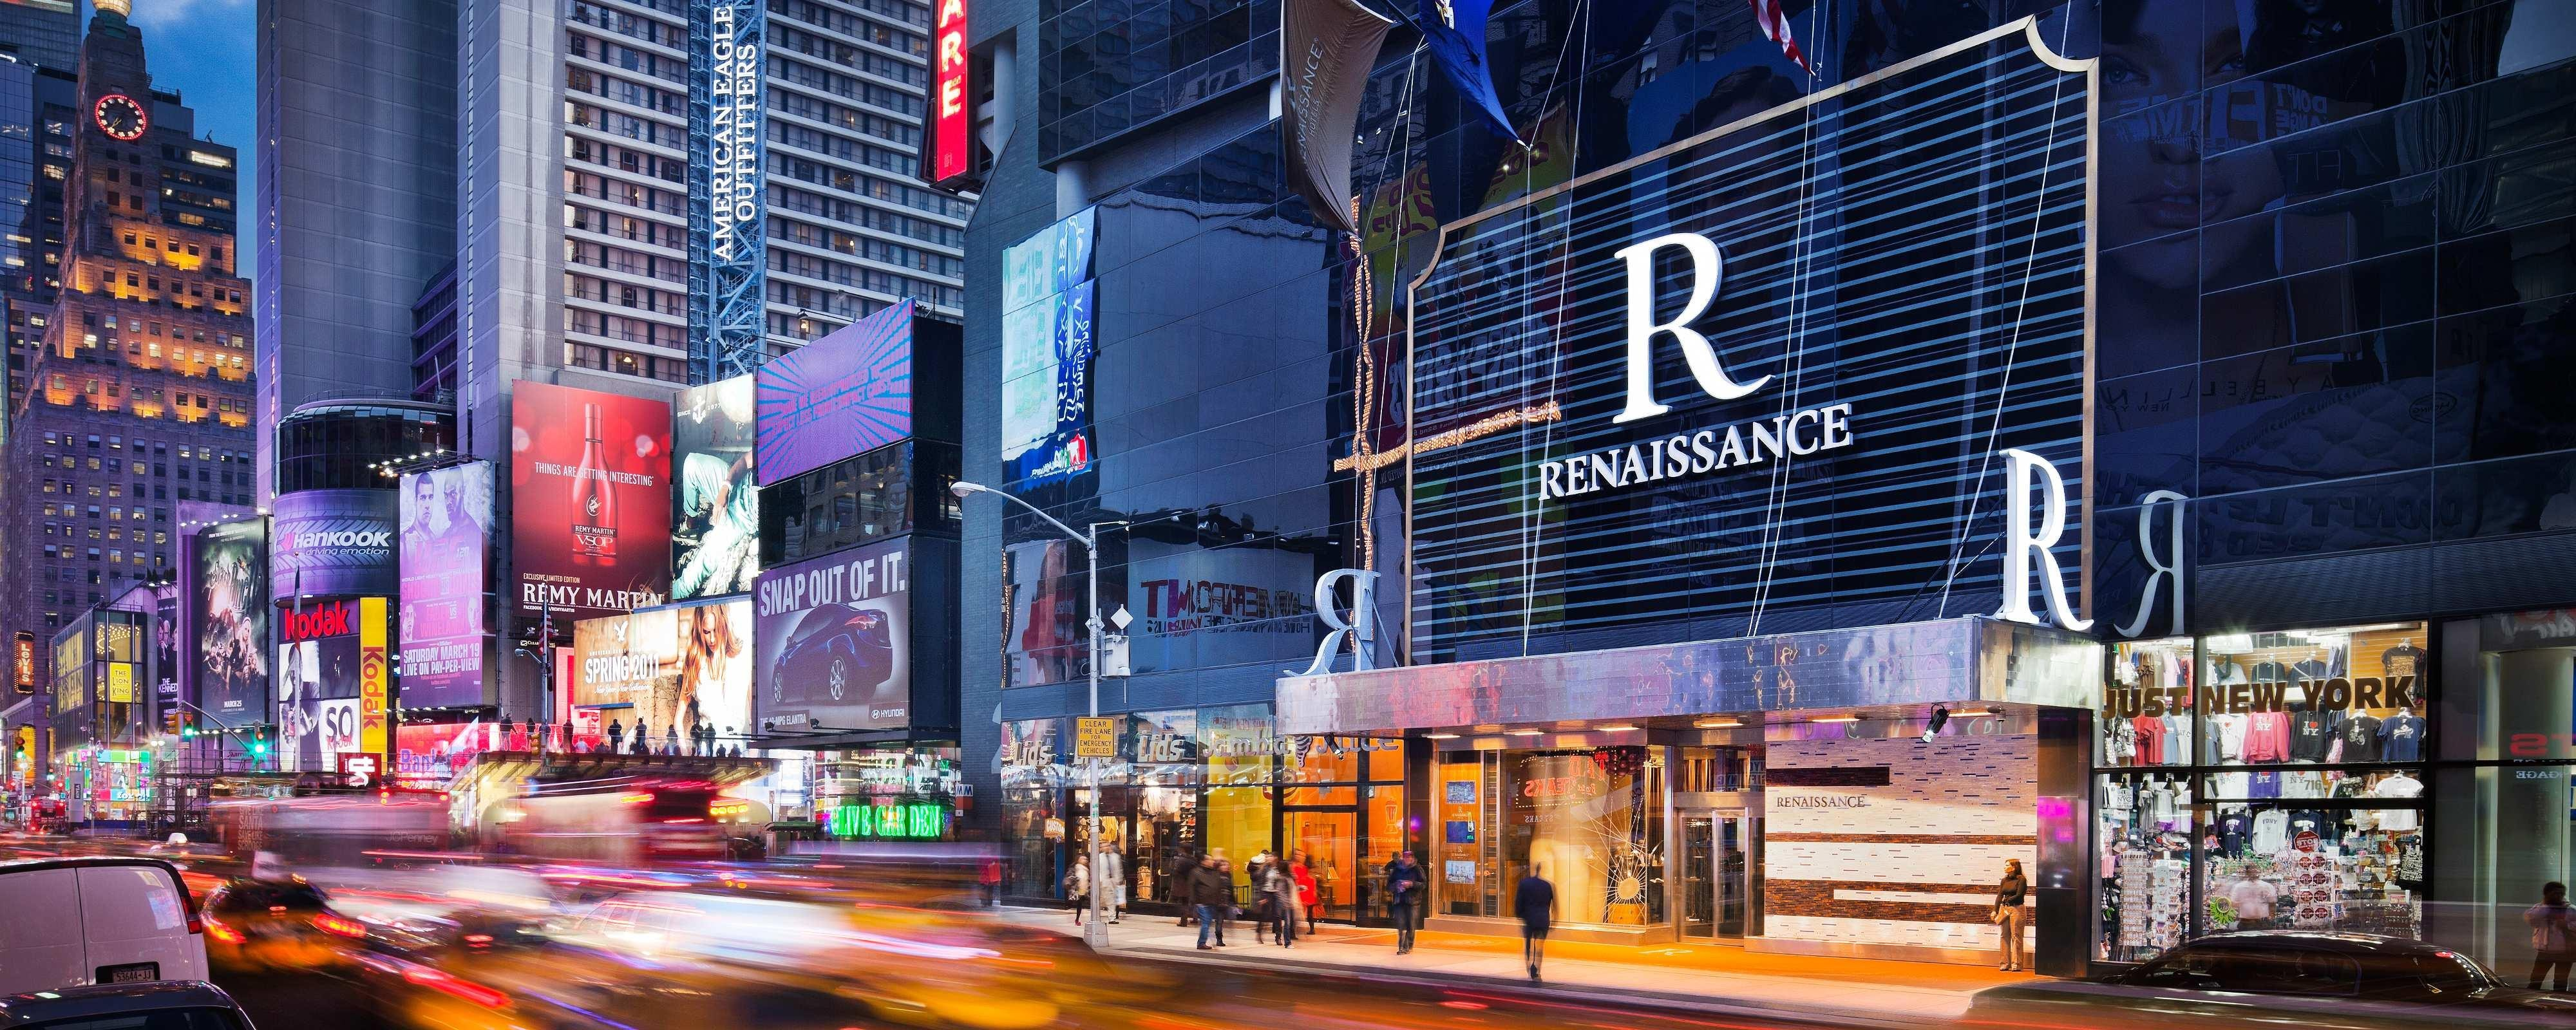 Albergo York Boutique Hotel Times Square Nyc Renaissance New York Times